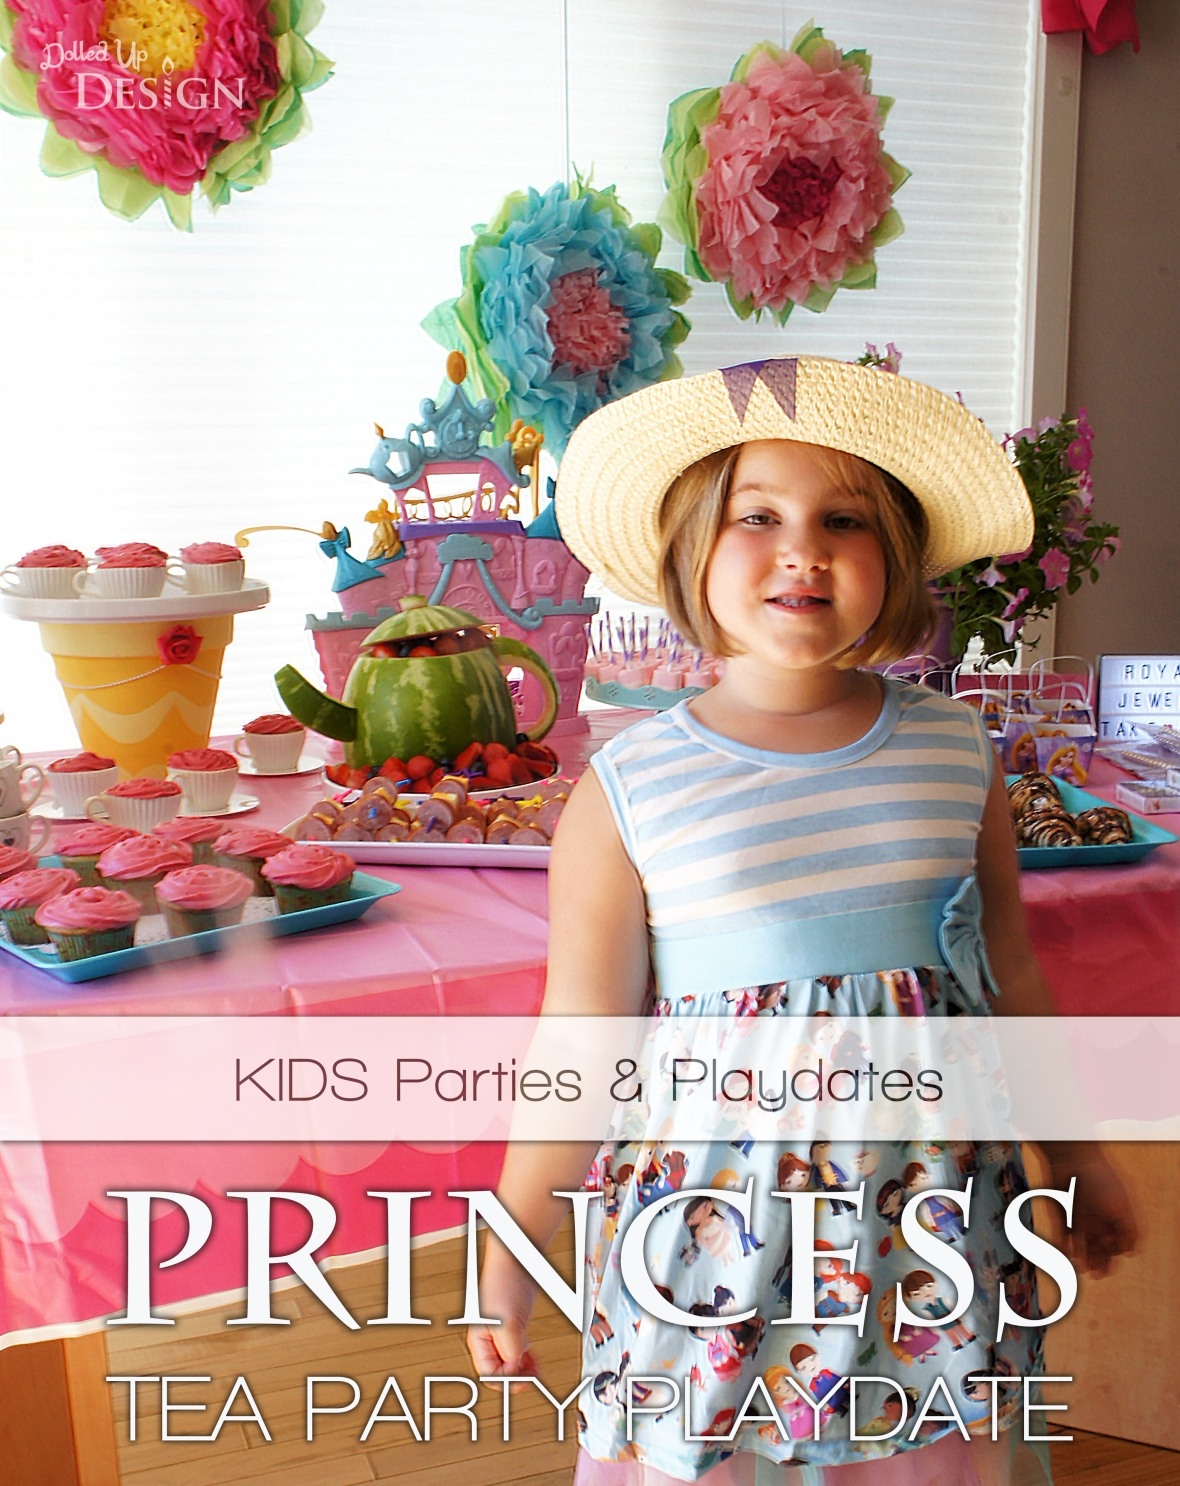 A Princess Tea Party Playdate